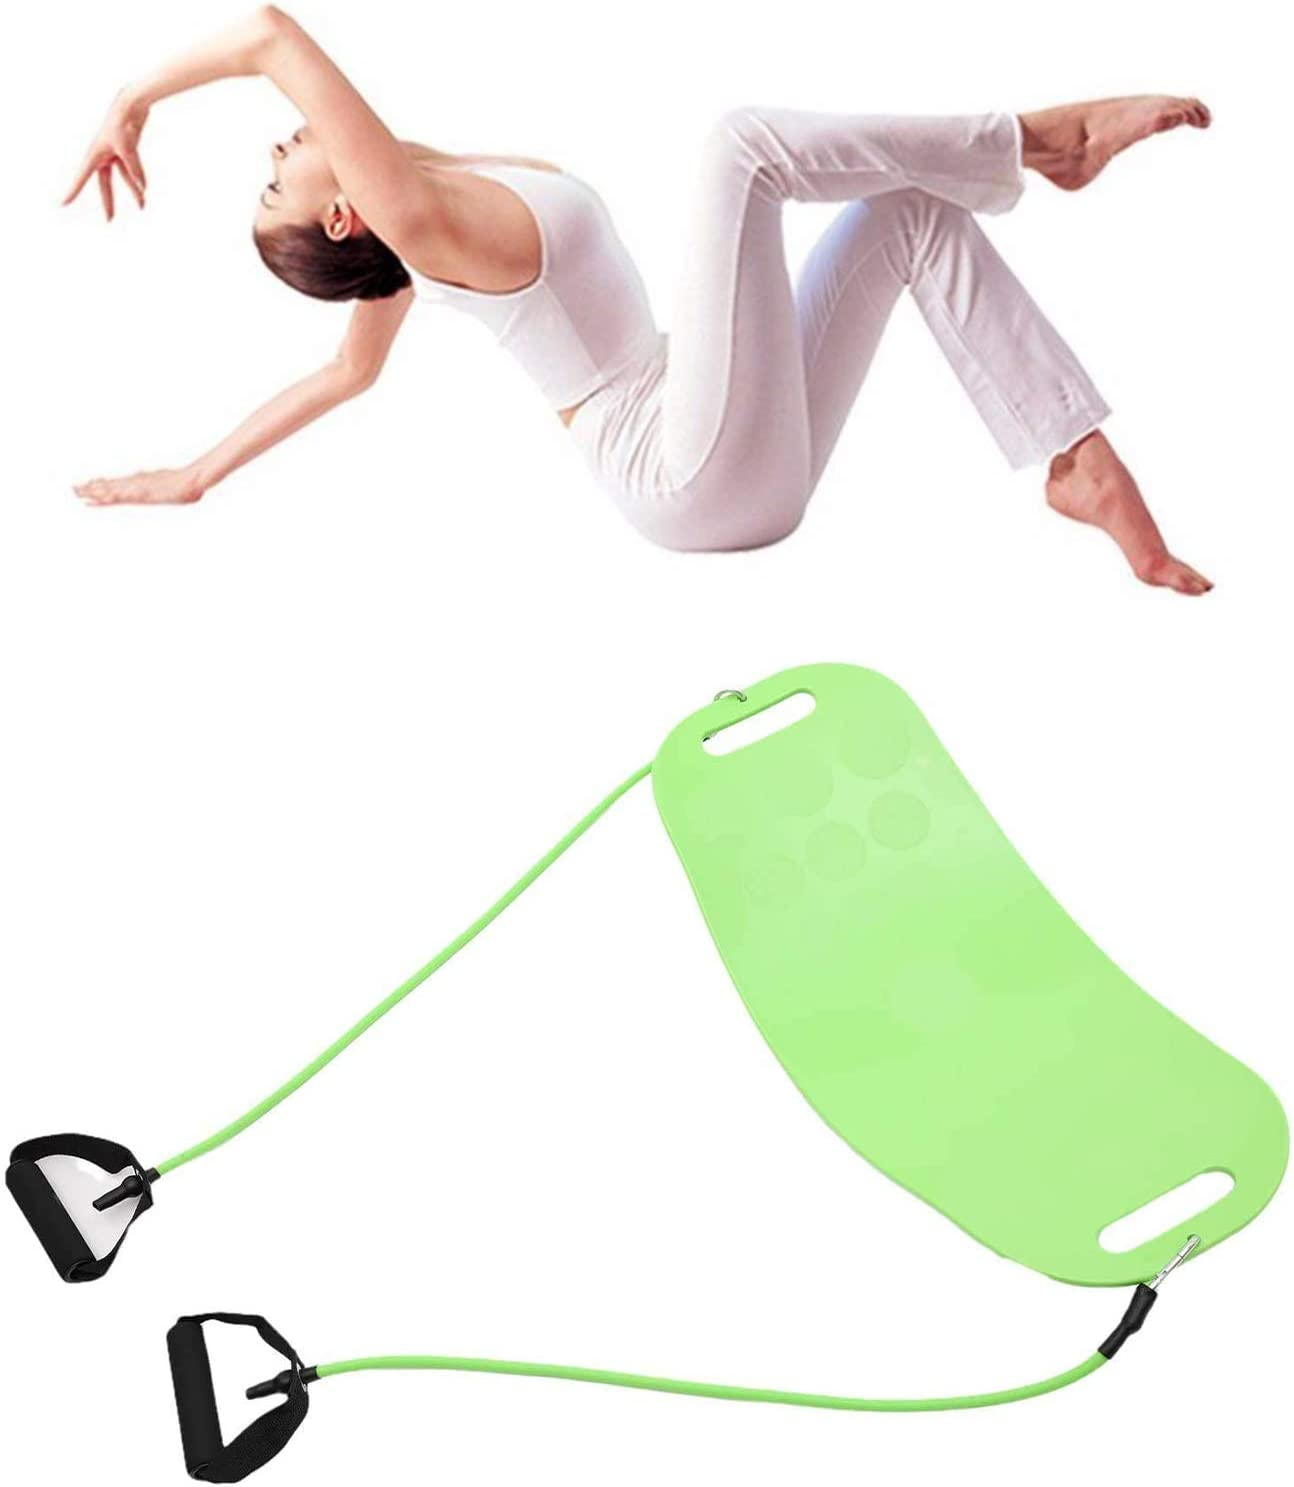 EMAIS Balance Board with Resistance Bands Ideal for Core Workout The Abs Legs Core Workout Yoga Board Fitness Board for Adults Ankle Workouts Dancers Balancing Exercises Gym Sports Ballet